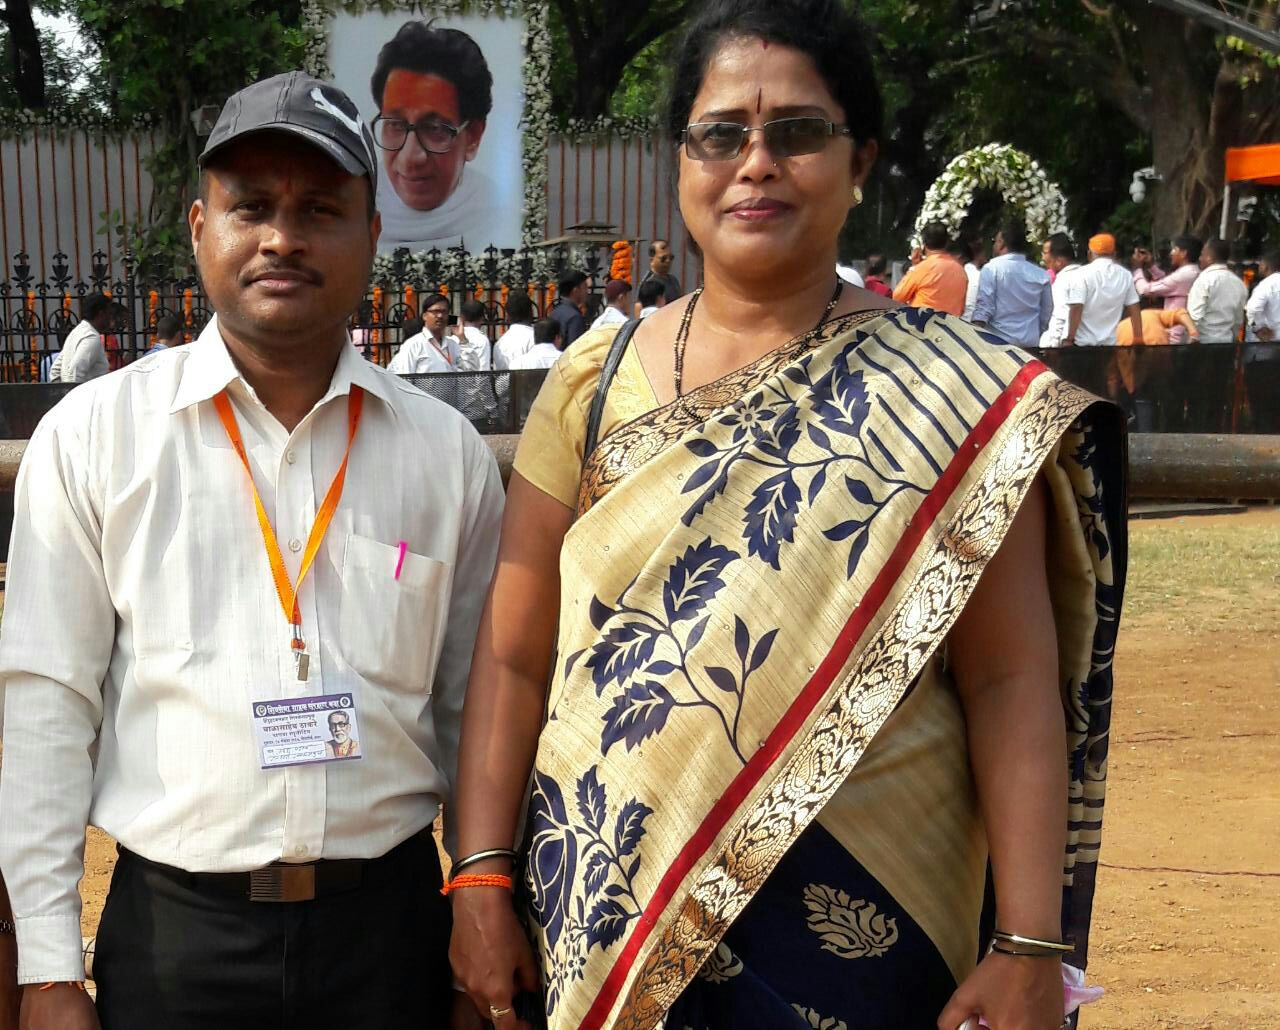 Chitra Shinde is a deputy head of the Shiv Sena unit in the Jogeshwari area.